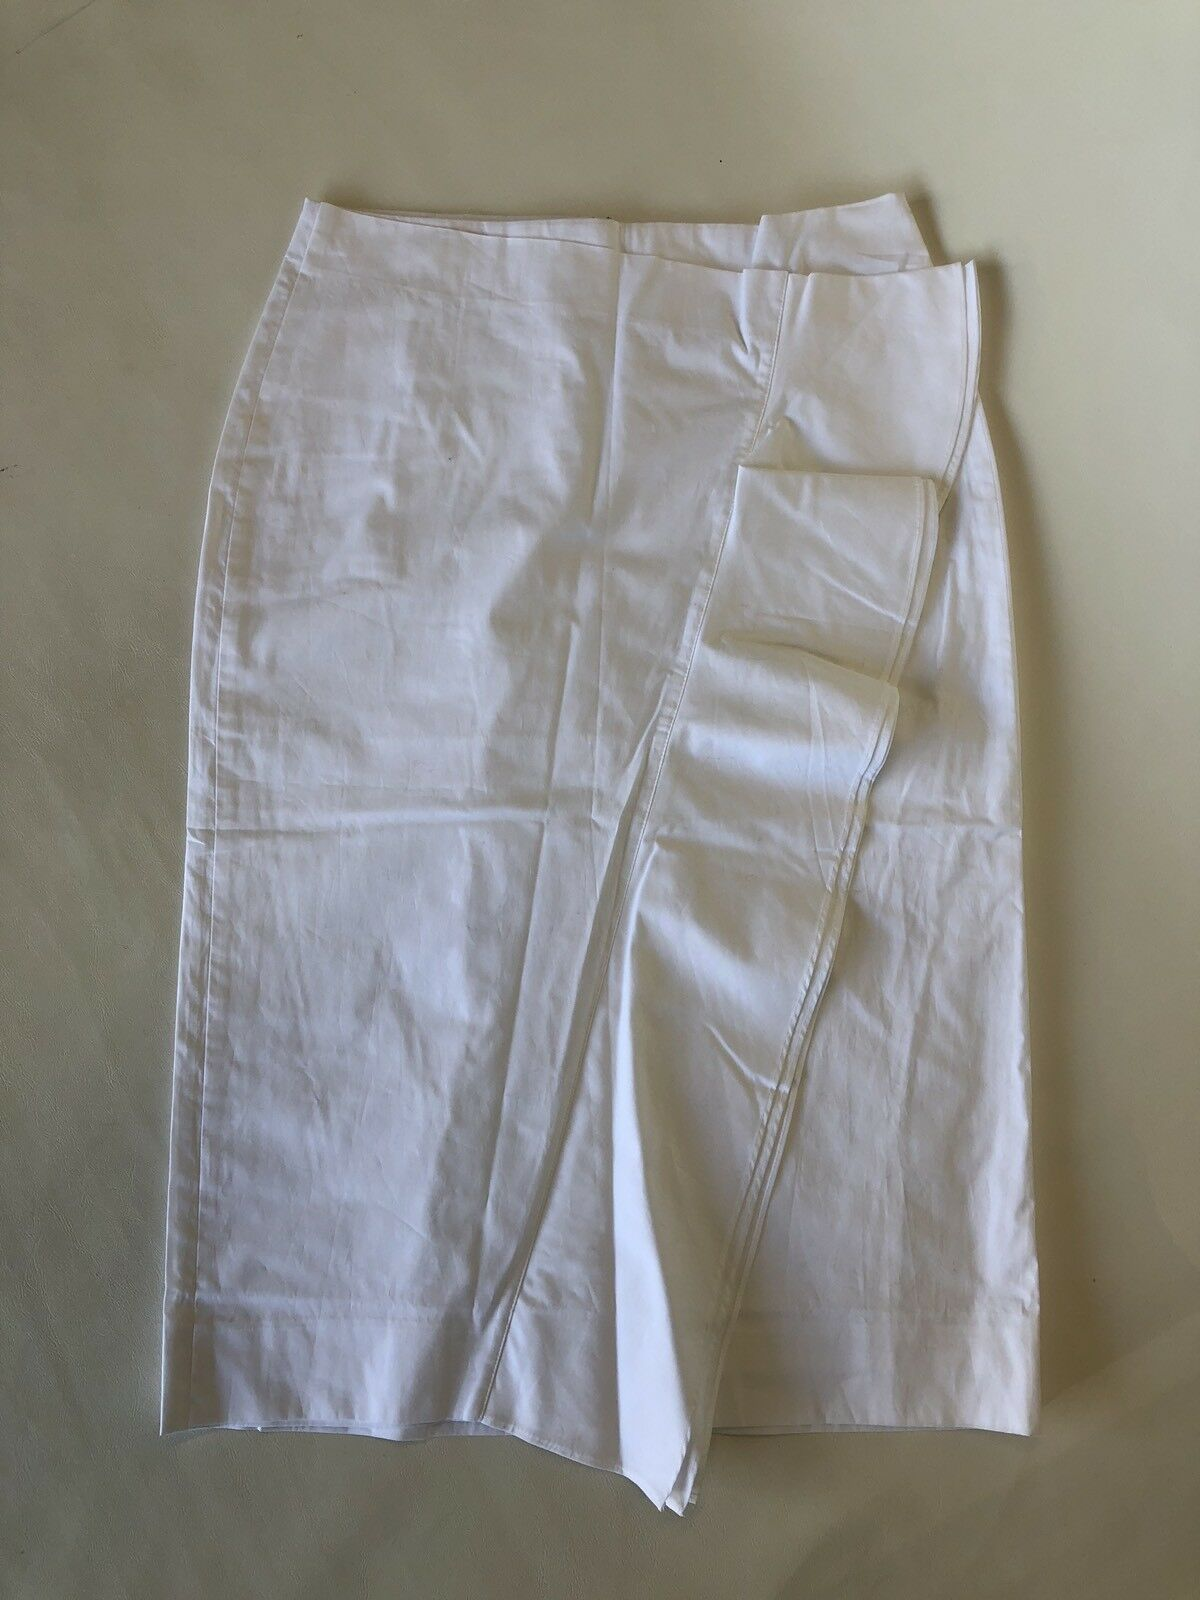 New J.Crew Tall Ruffle skirt in cotton poplin White Sz 4T G3622